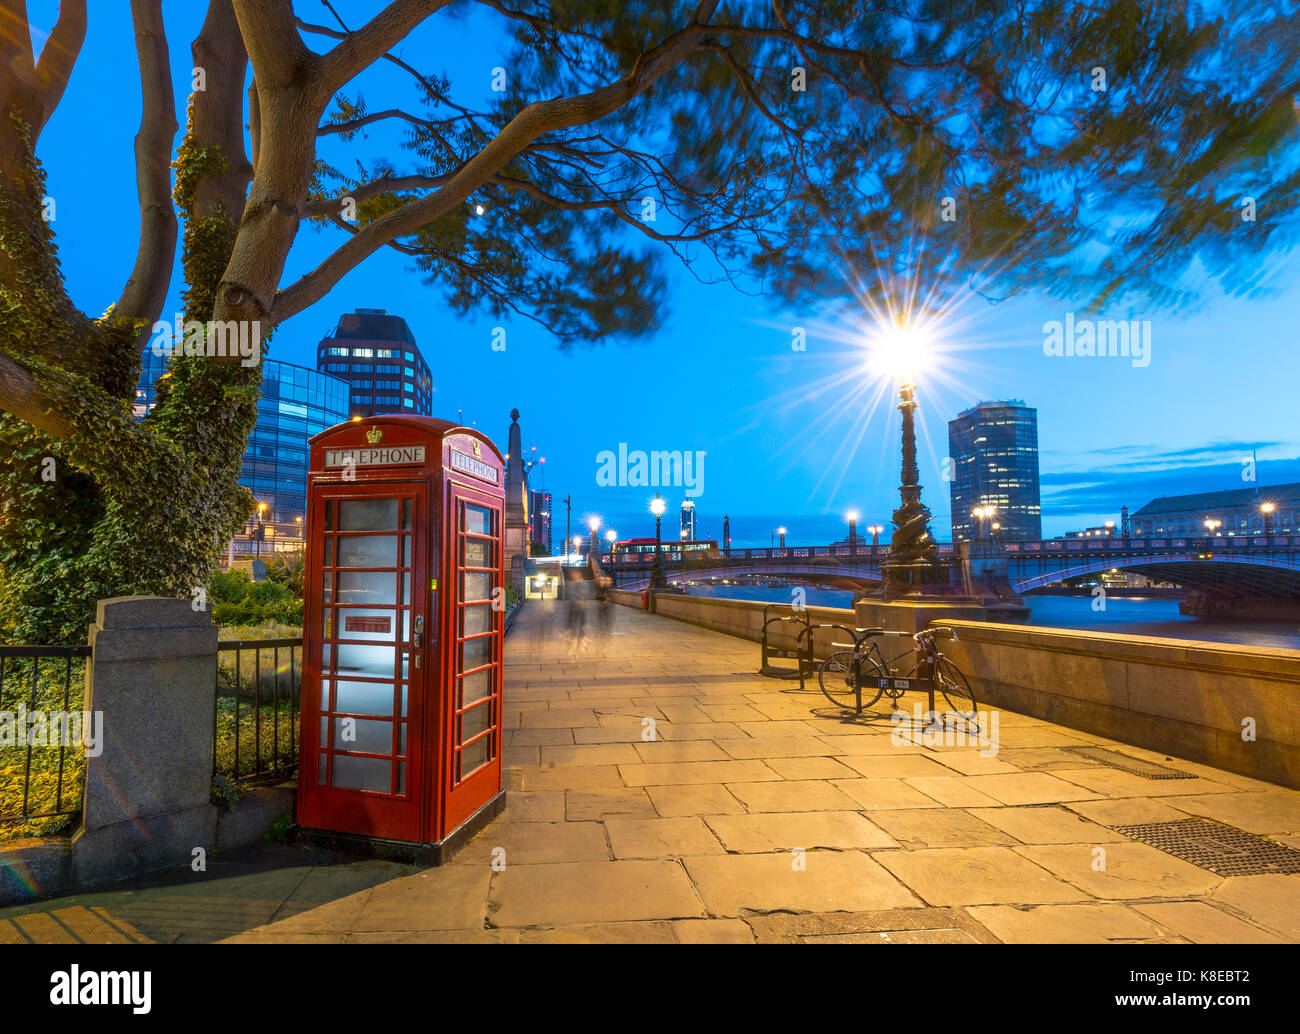 Typical red telephone box, pedestrian walkway next to the Thames, London, England, Great Britain - Stock Image